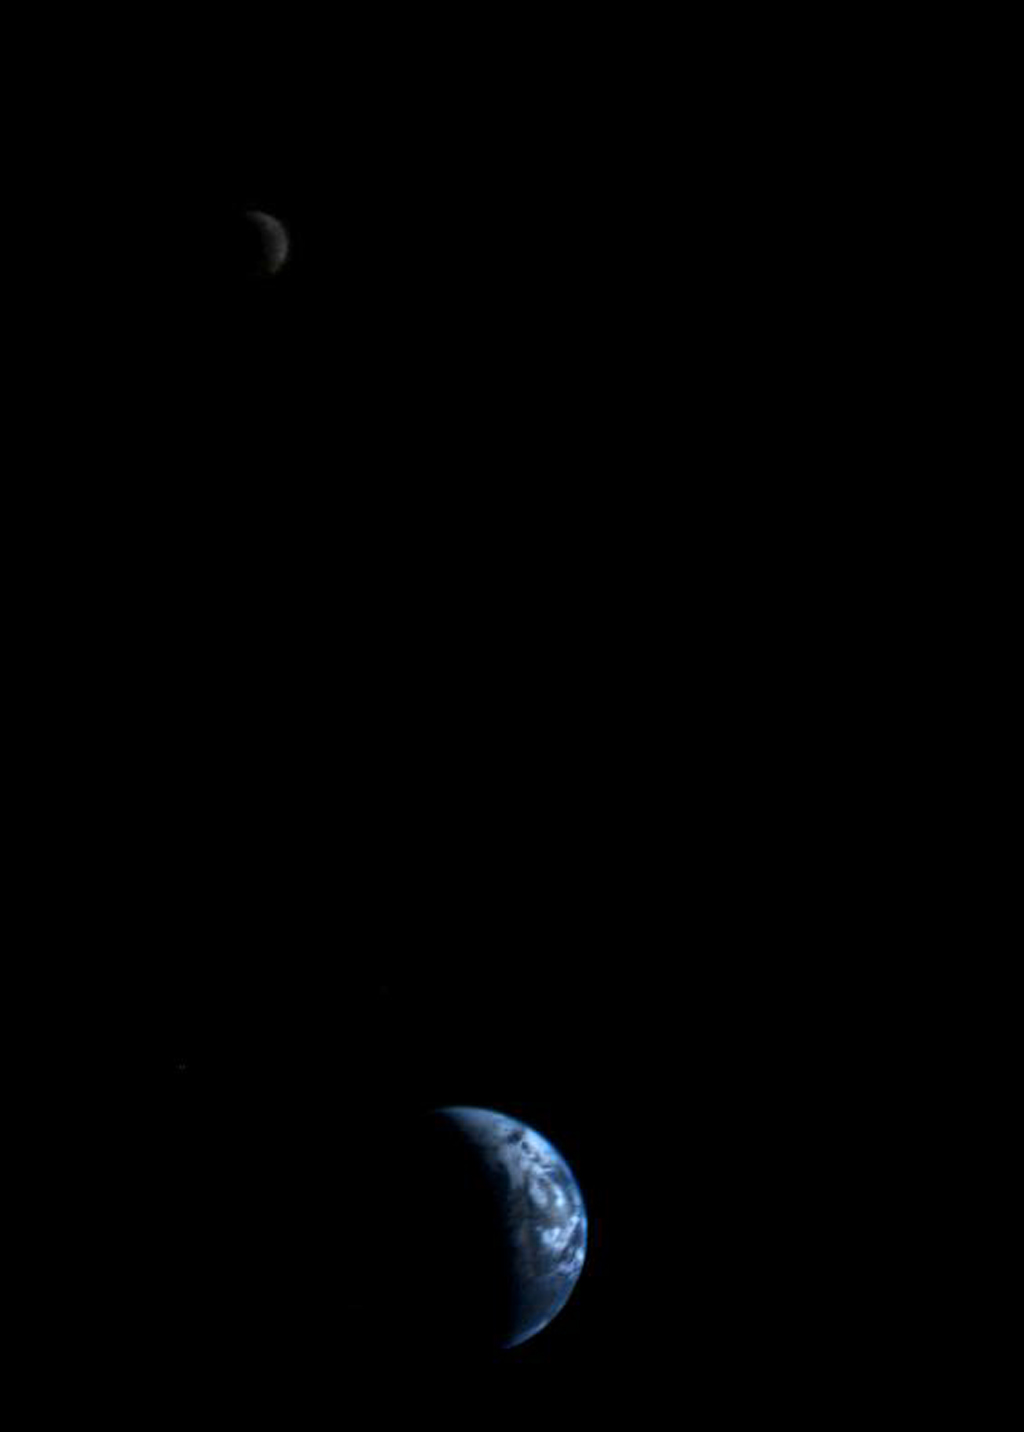 The earth and the moon, captured on September 18, 1977 by NASA Voyager 1 at a distance of 7.25 million miles away from earth. Image  via  the Jet Propulsion Laboratory at the California Institute of Technology.